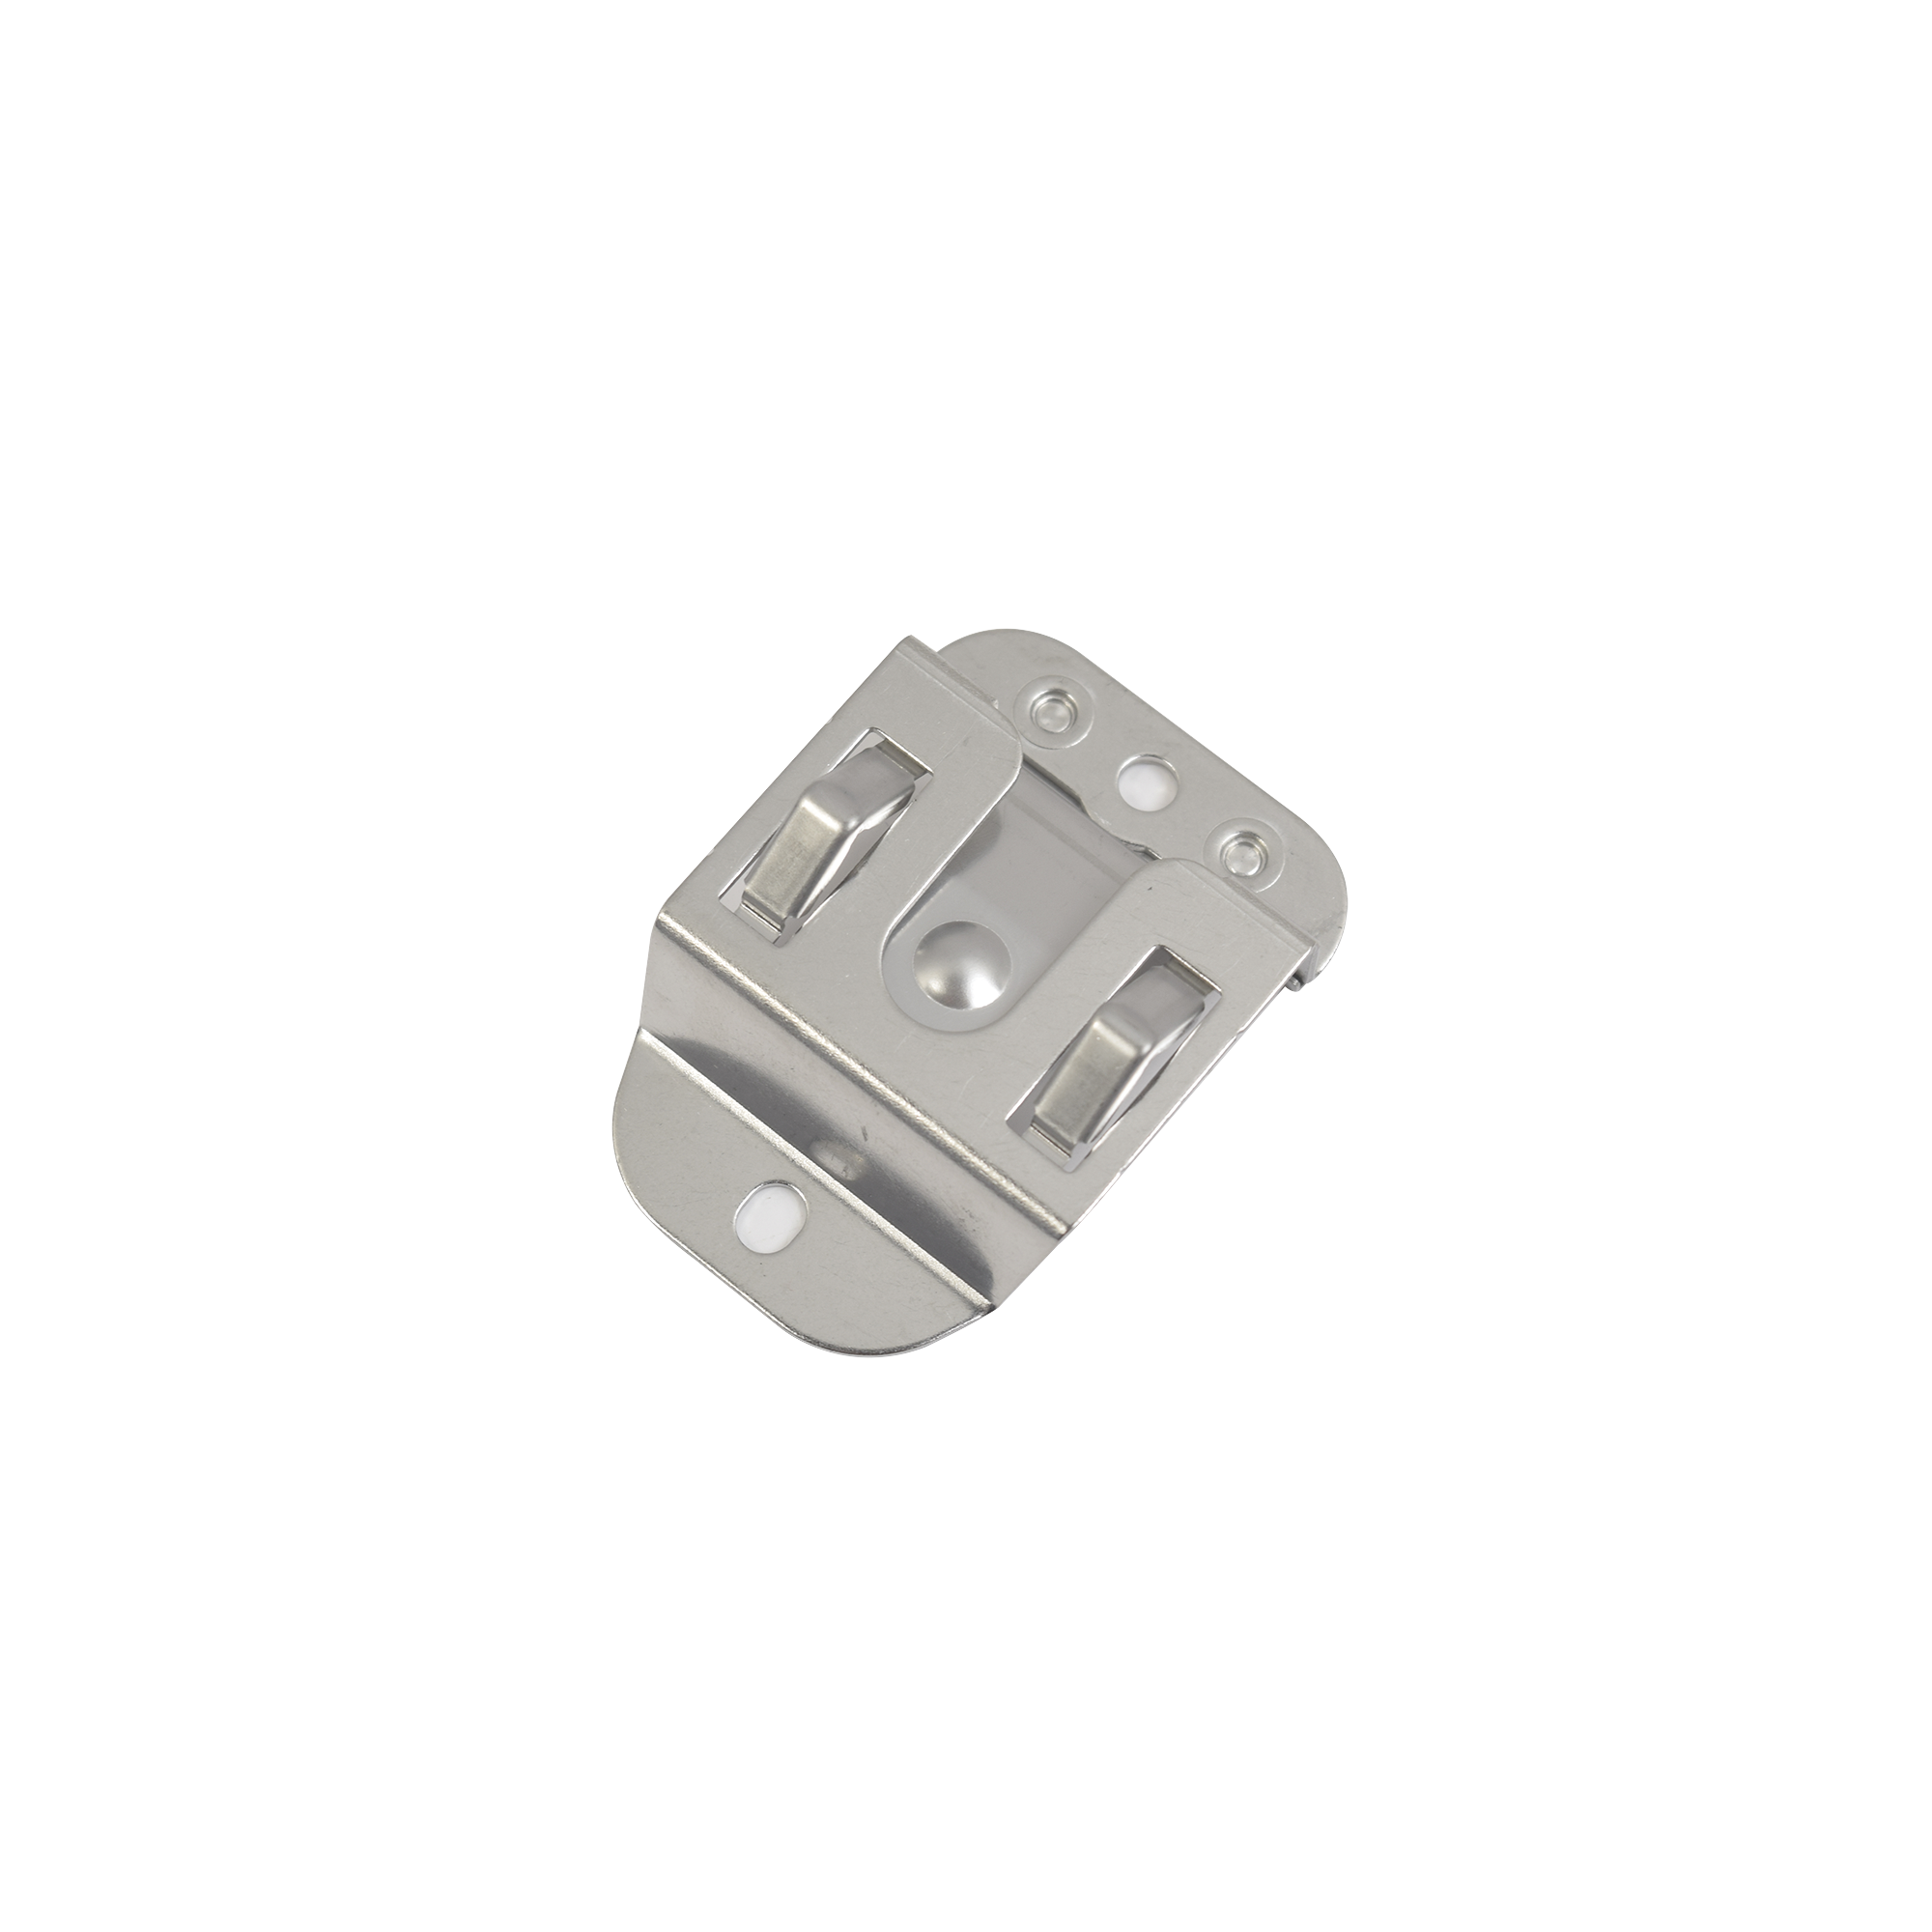 Backet para radio IC-F5061D/6061D